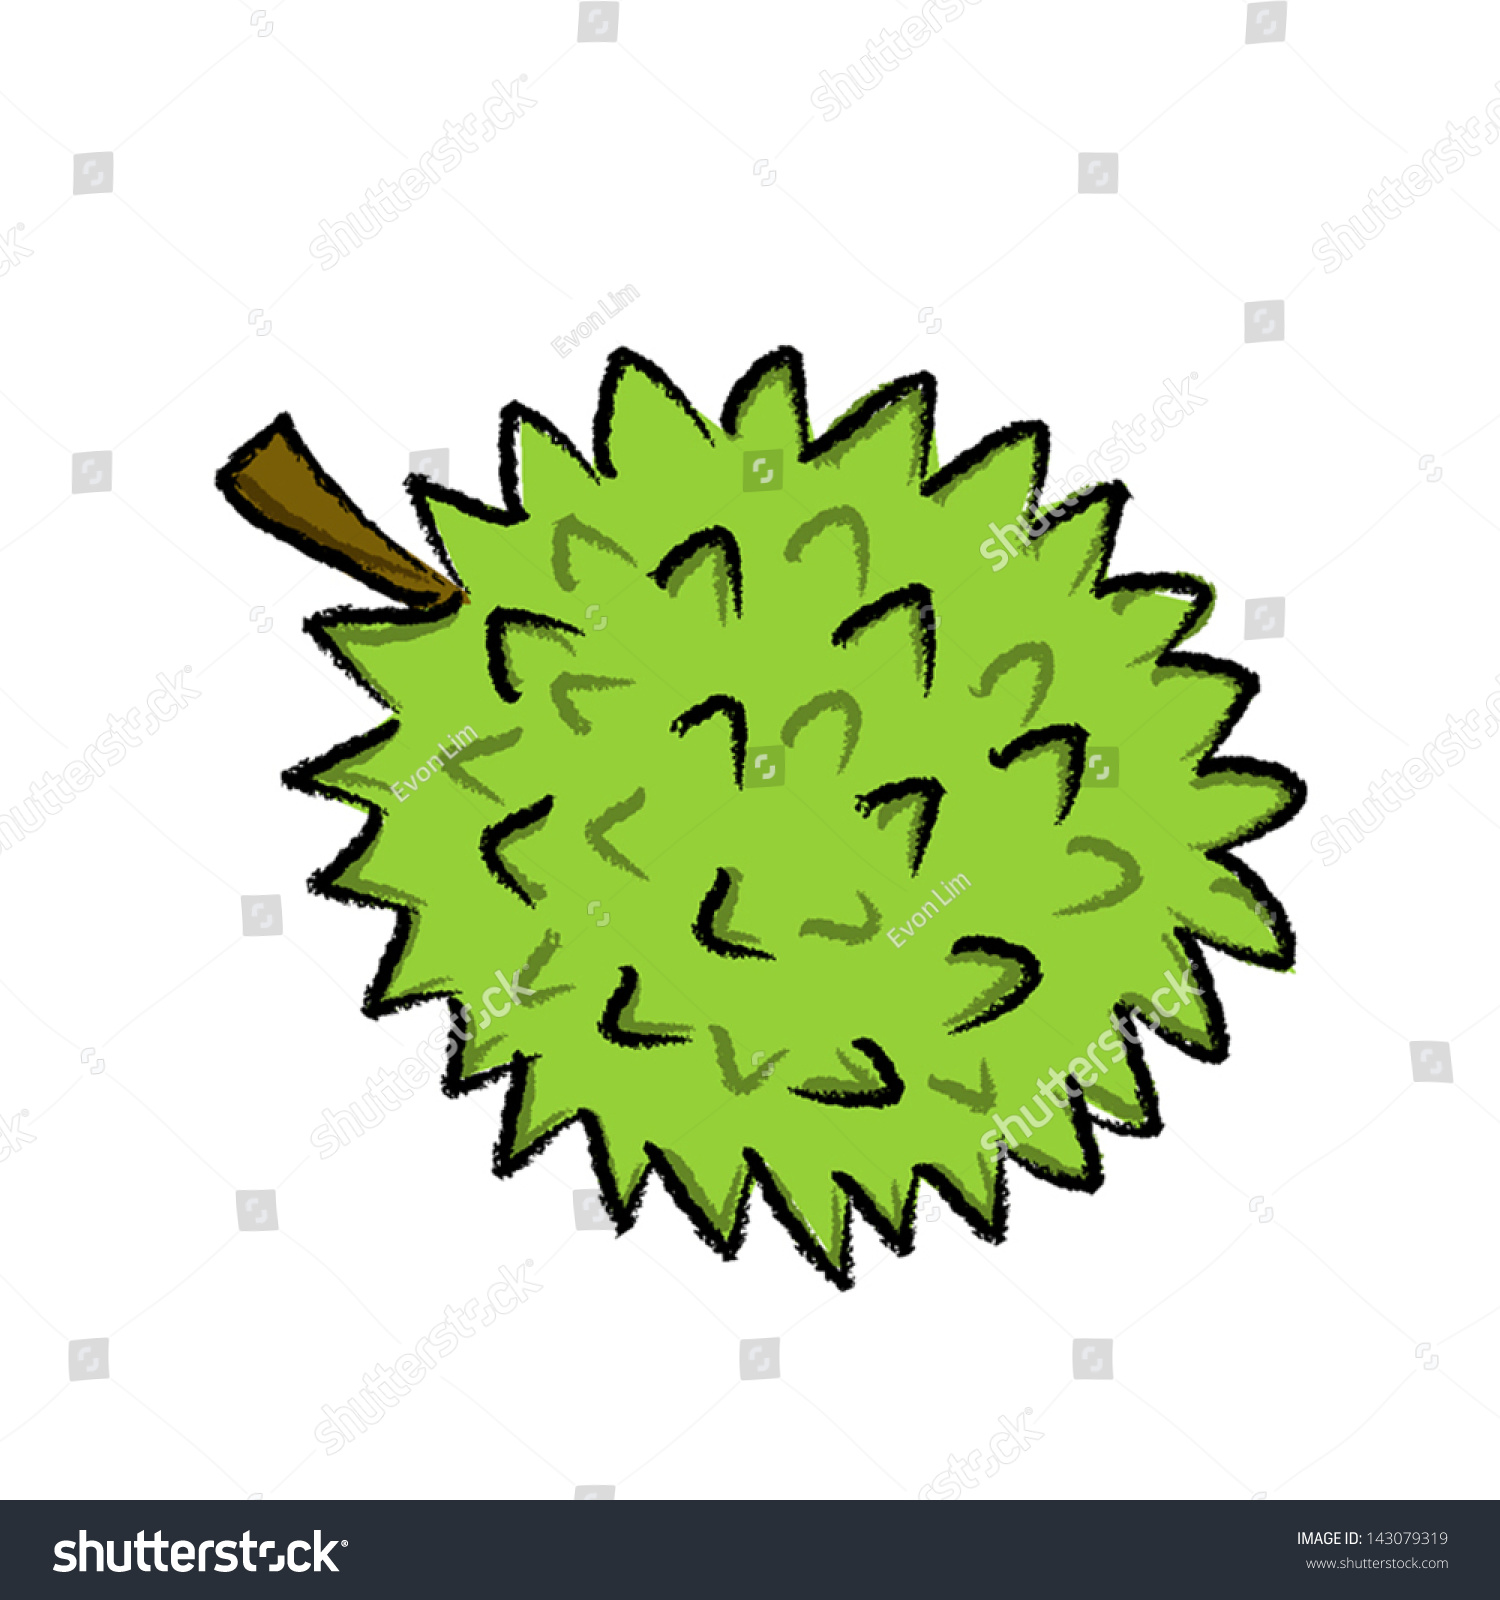 map out multiple addresses with Stock Vector Sketch Style Durian The Tropical Fruit It Is Usually Called The King Of Fruits People Either Love on Stock Photo Trinidad And Tobago Shaded Relief Map Colored According To Vegetation With Major Urban Areas moreover Stock Vector Countries And Capitals Of The Europe Vector Illustration furthermore Stock Photo Chalermprakiet Temple L ang Thailand together with Stock Photo Anatomical Body Human Skeleton Anatomy Of Human Bony System Body Surface Contour And Palpable additionally Stock Vector Arabian Peninsula.